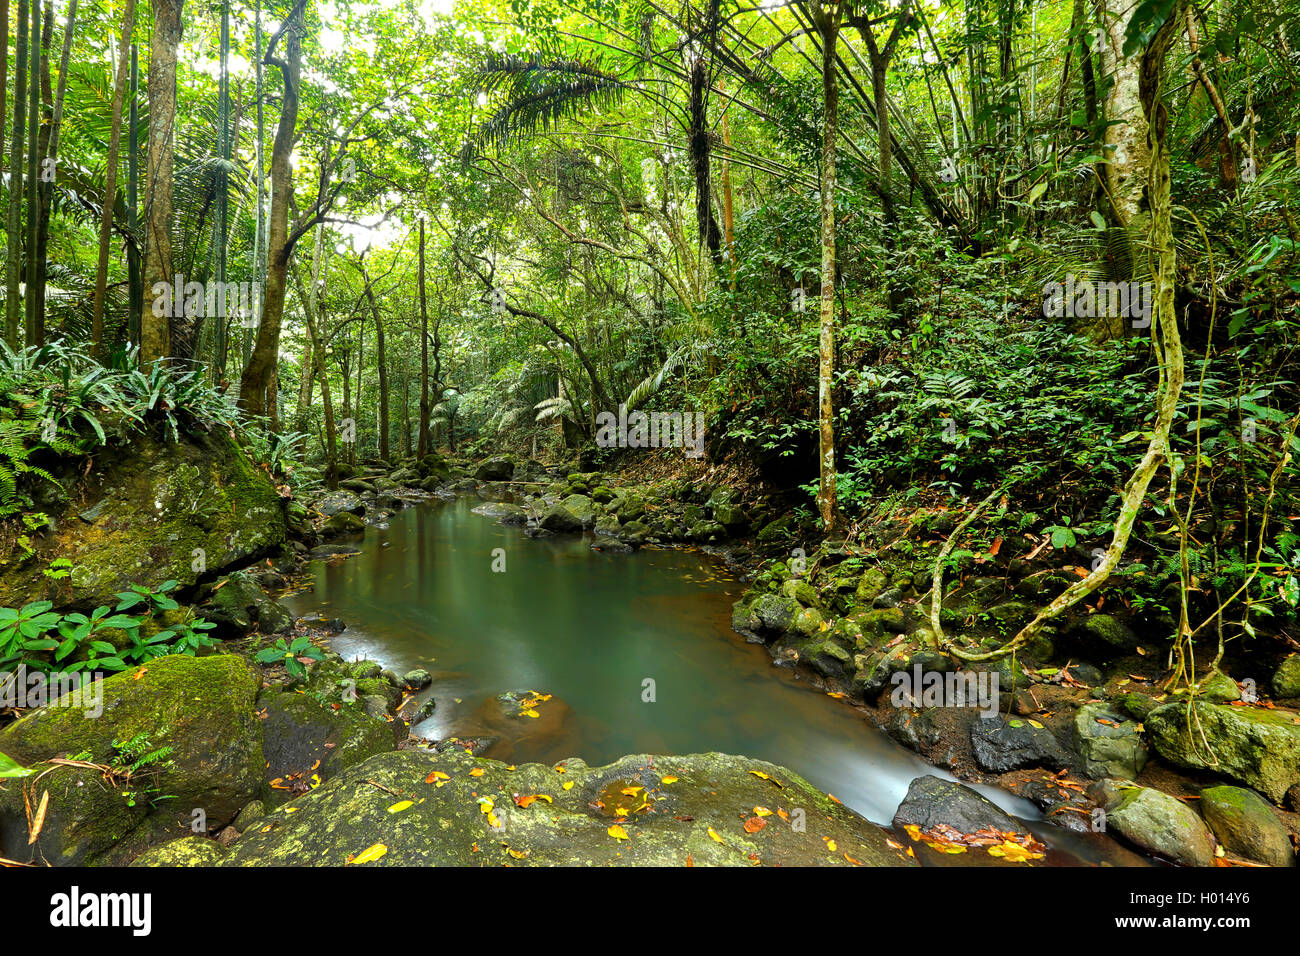 bach im tropischen regenwald philippinen creek in tropical forest stock photo 120498426 alamy. Black Bedroom Furniture Sets. Home Design Ideas